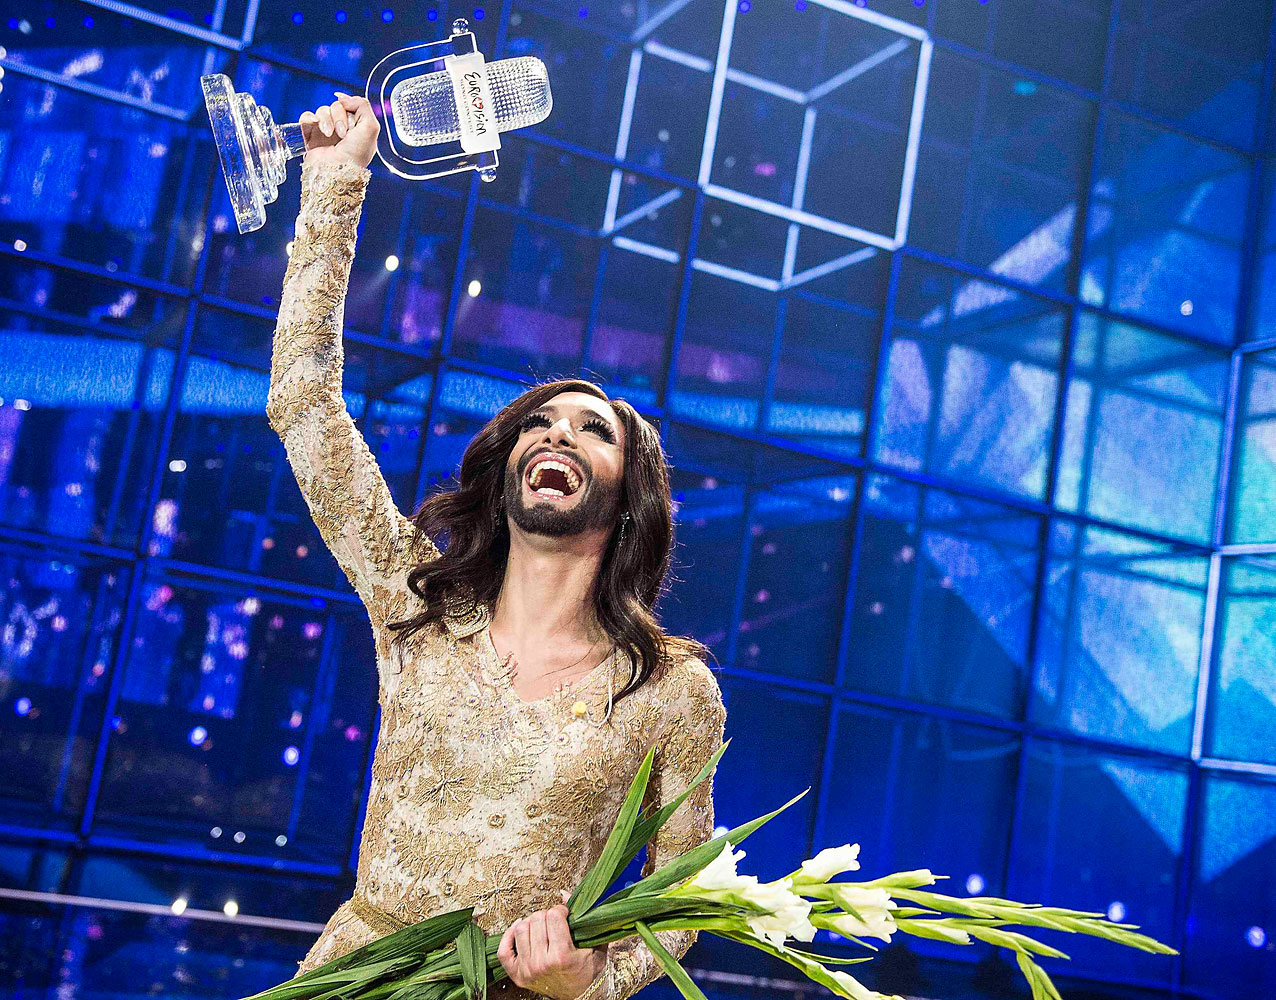 Conchita Wurst representing Austria celebrates with the trophy after winning the 59th annual Eurovision Song Contest (ESC) at the BW Hallerne in Copenhagen, in this May 10, 2014 picture provided by Scanpix Denmark.